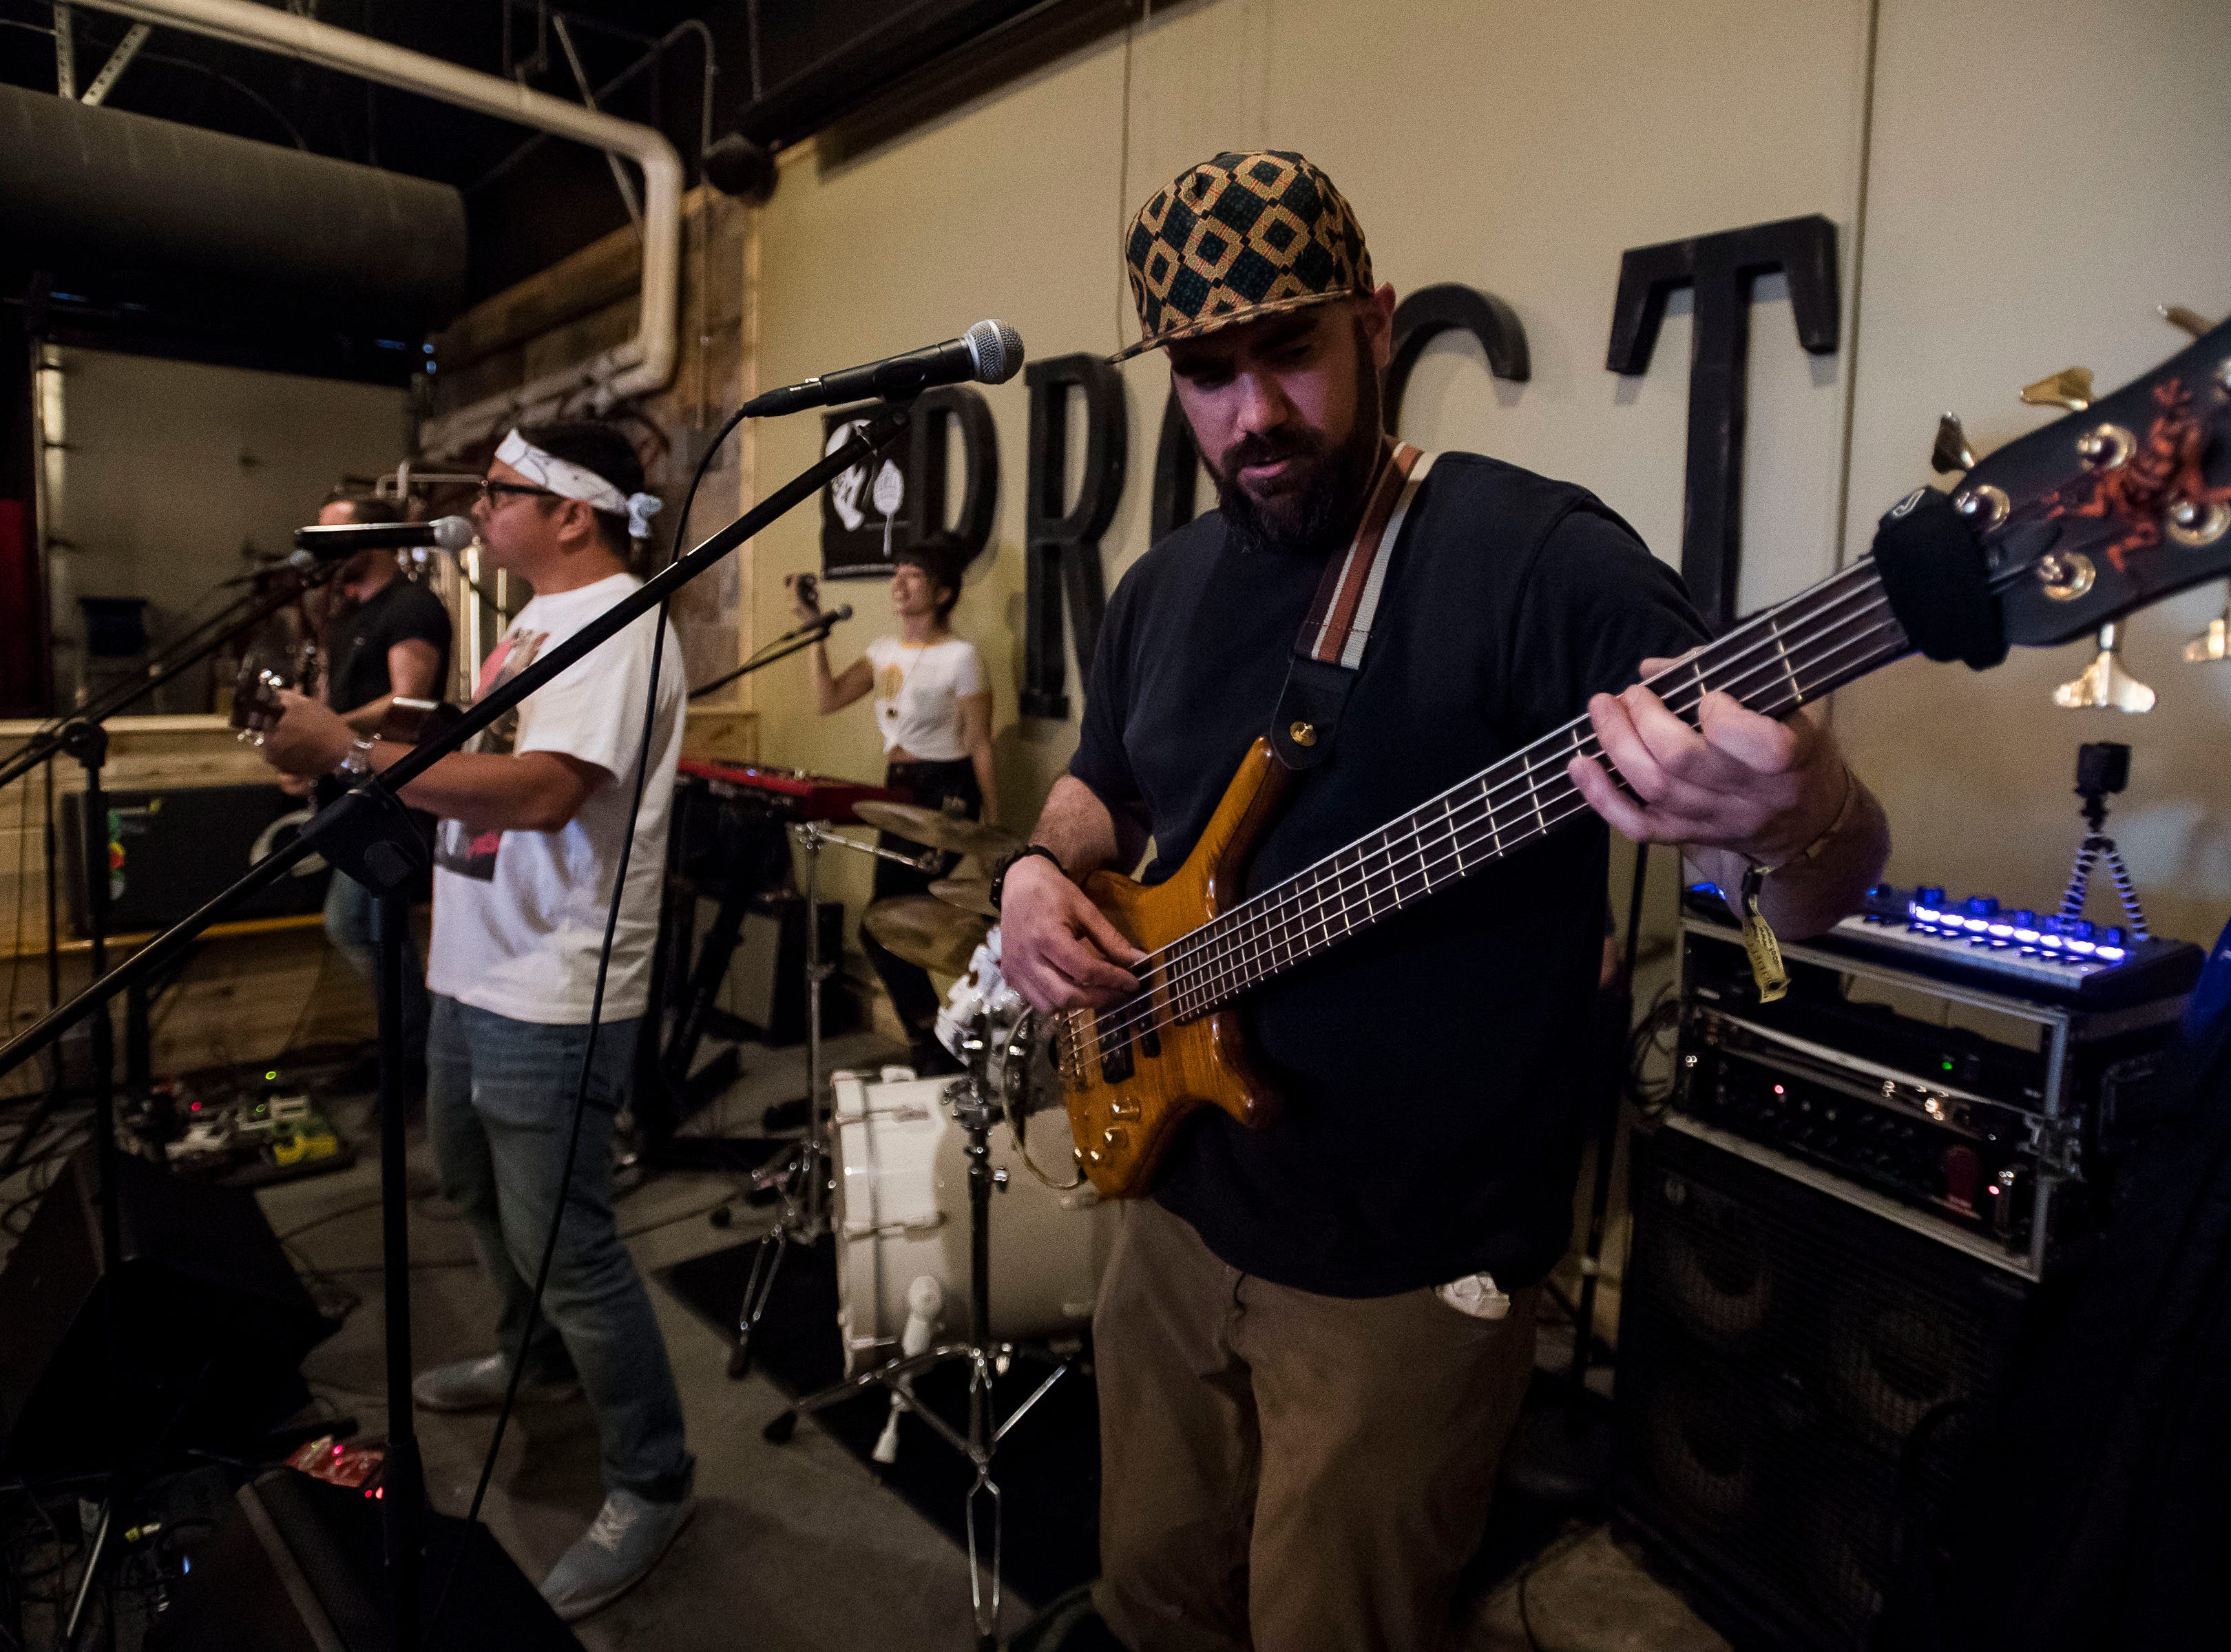 Lola Rising plays at Prost Brewing Co. and Biergarten during the FoCoMX XI music festival on Friday, April 26, 2019, in Fort Collins, Colo.